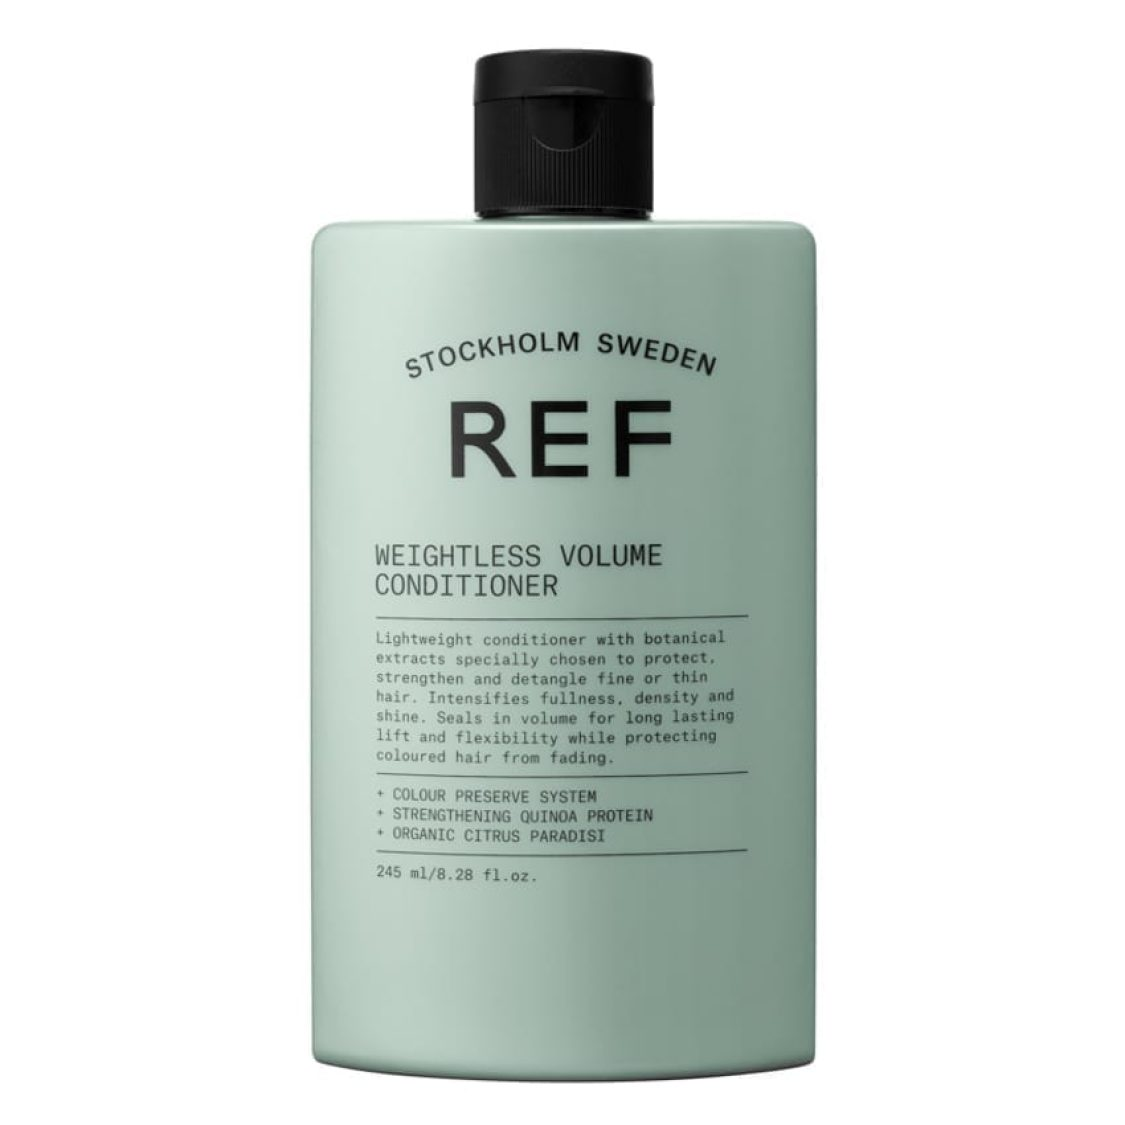 REF - Weightless Volume Conditioner 245ml